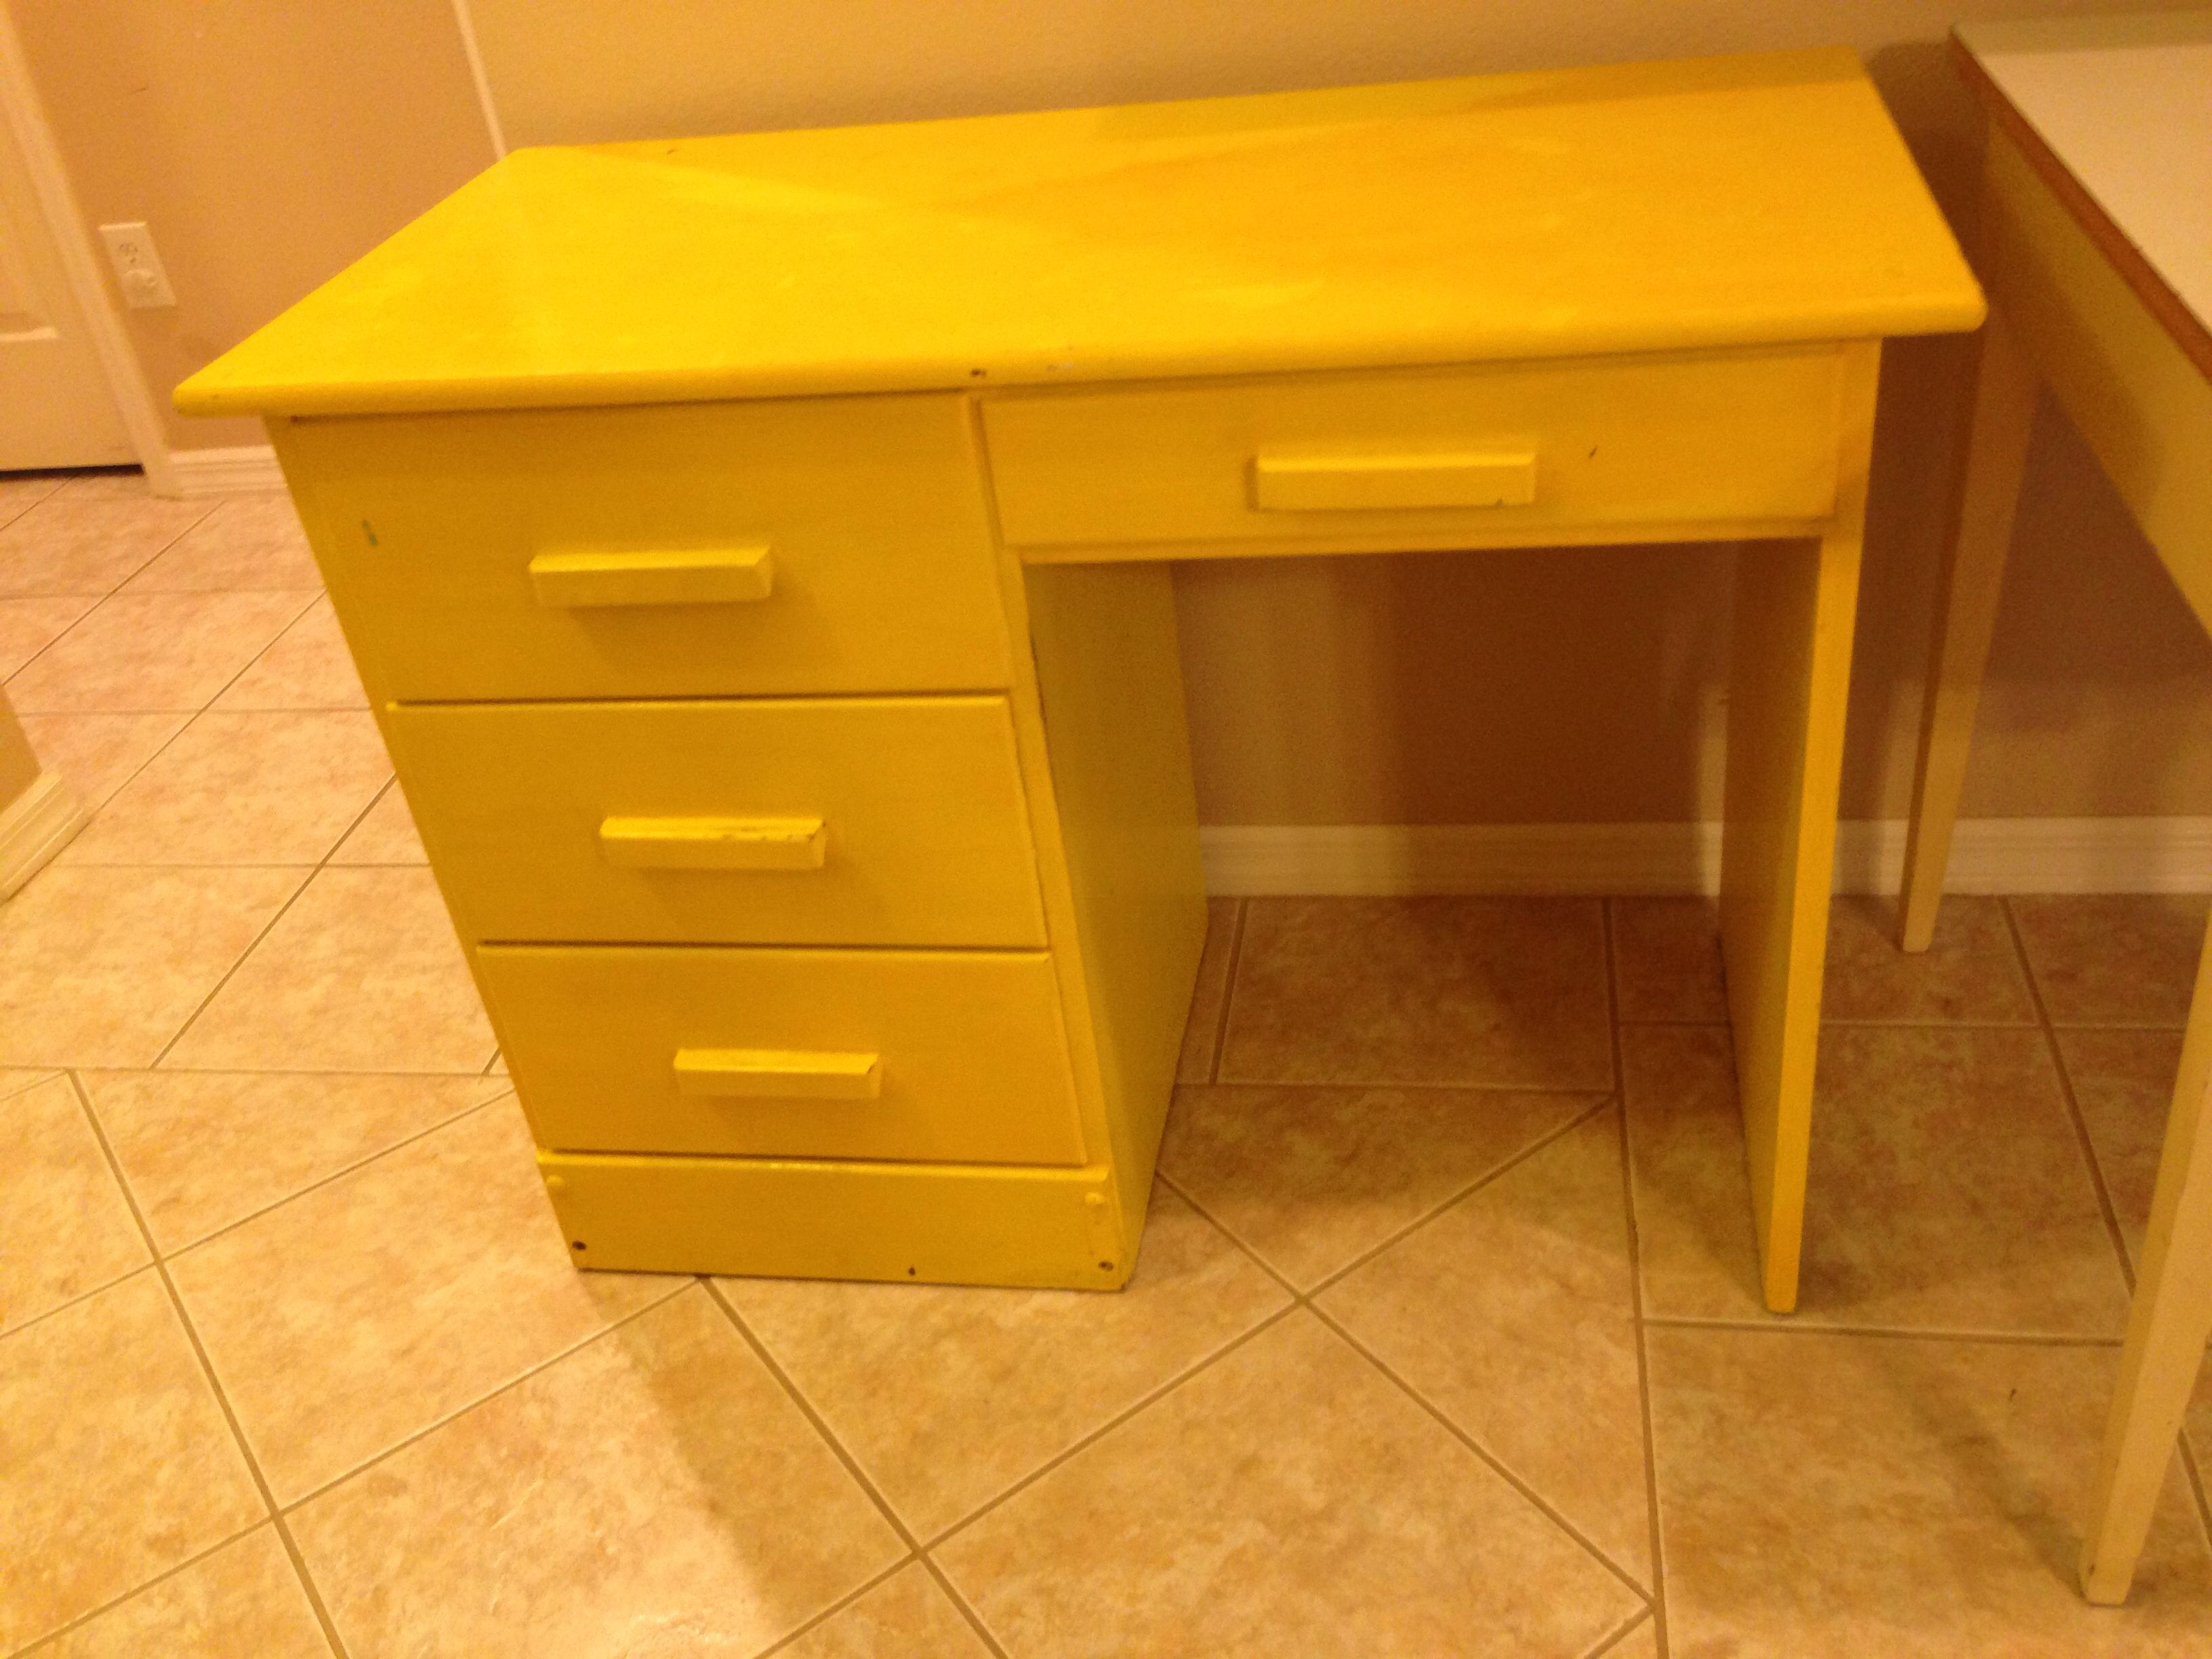 dsc blue school ticking yellow desk vintage childrens sony